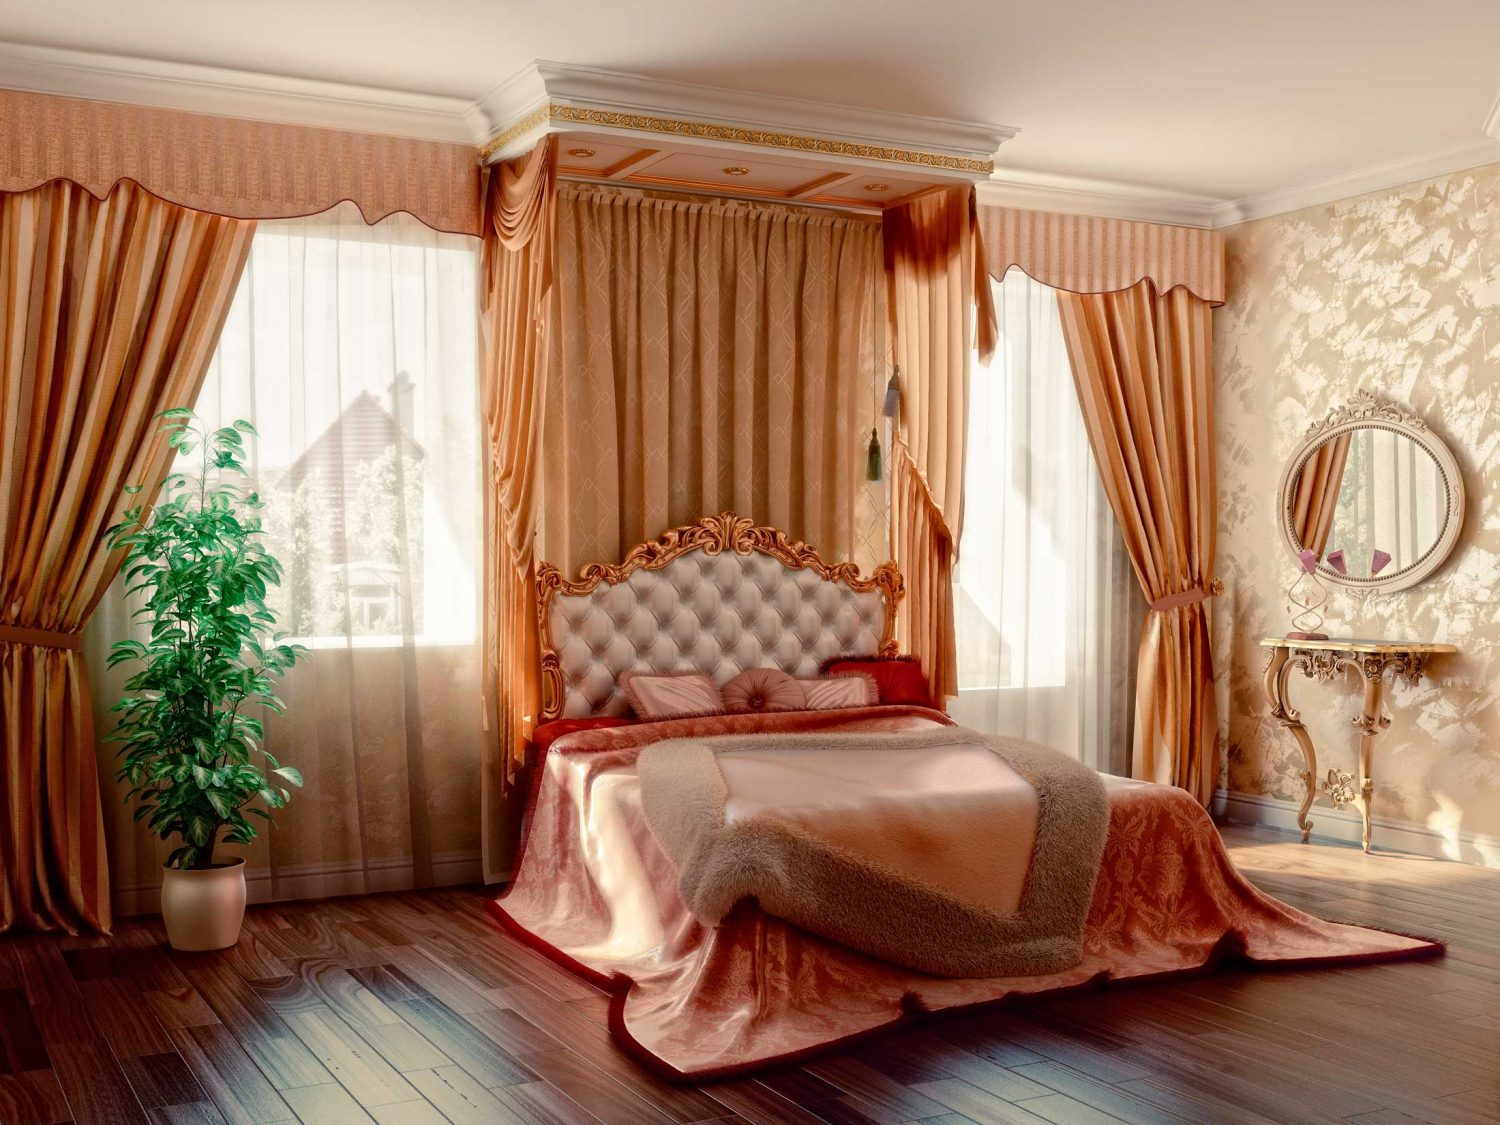 Bedroom with wood floor and draperies